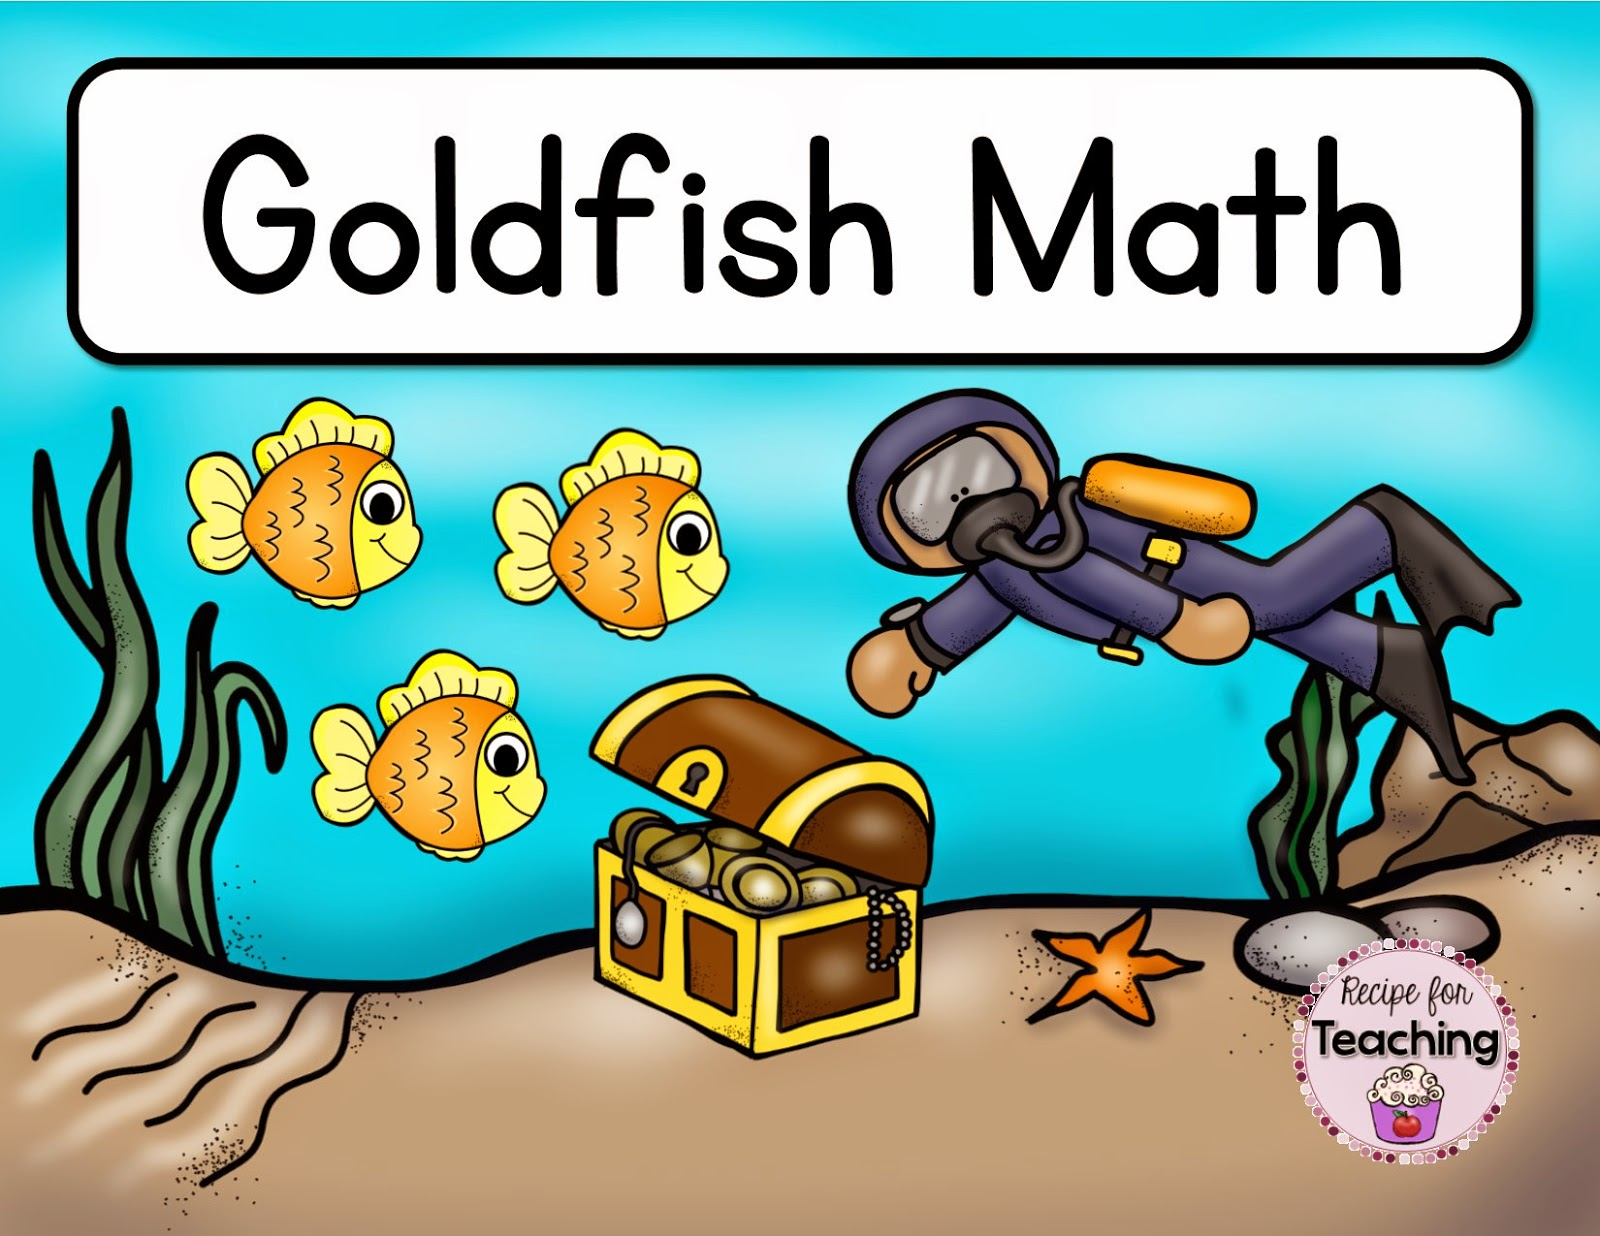 https://www.teacherspayteachers.com/Product/Goldfish-Math-Activities-1734278